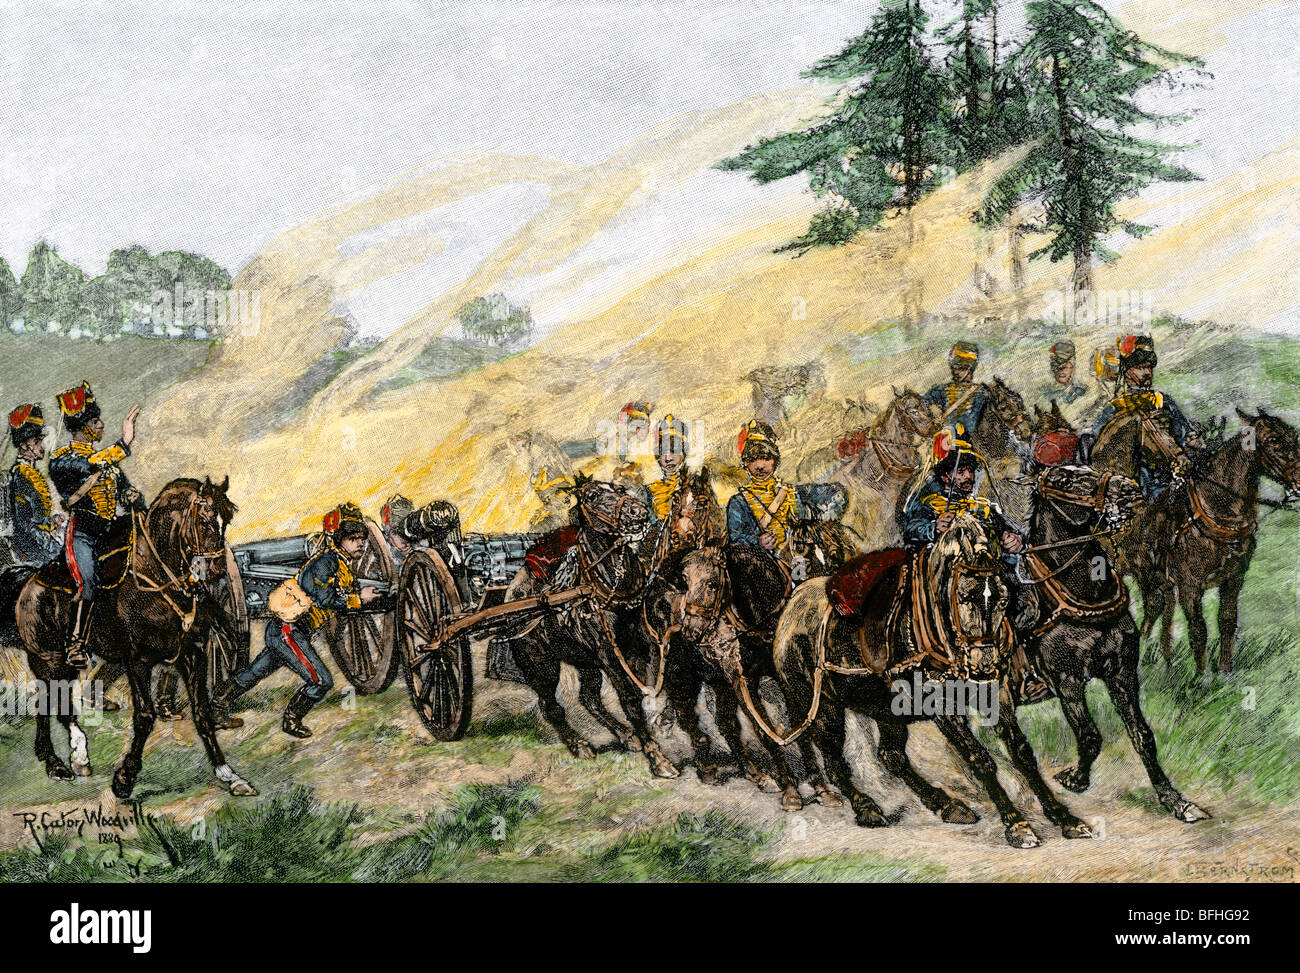 Royal Horse Artillery practicing, England, 1890. Hand-colored woodcut - Stock Image